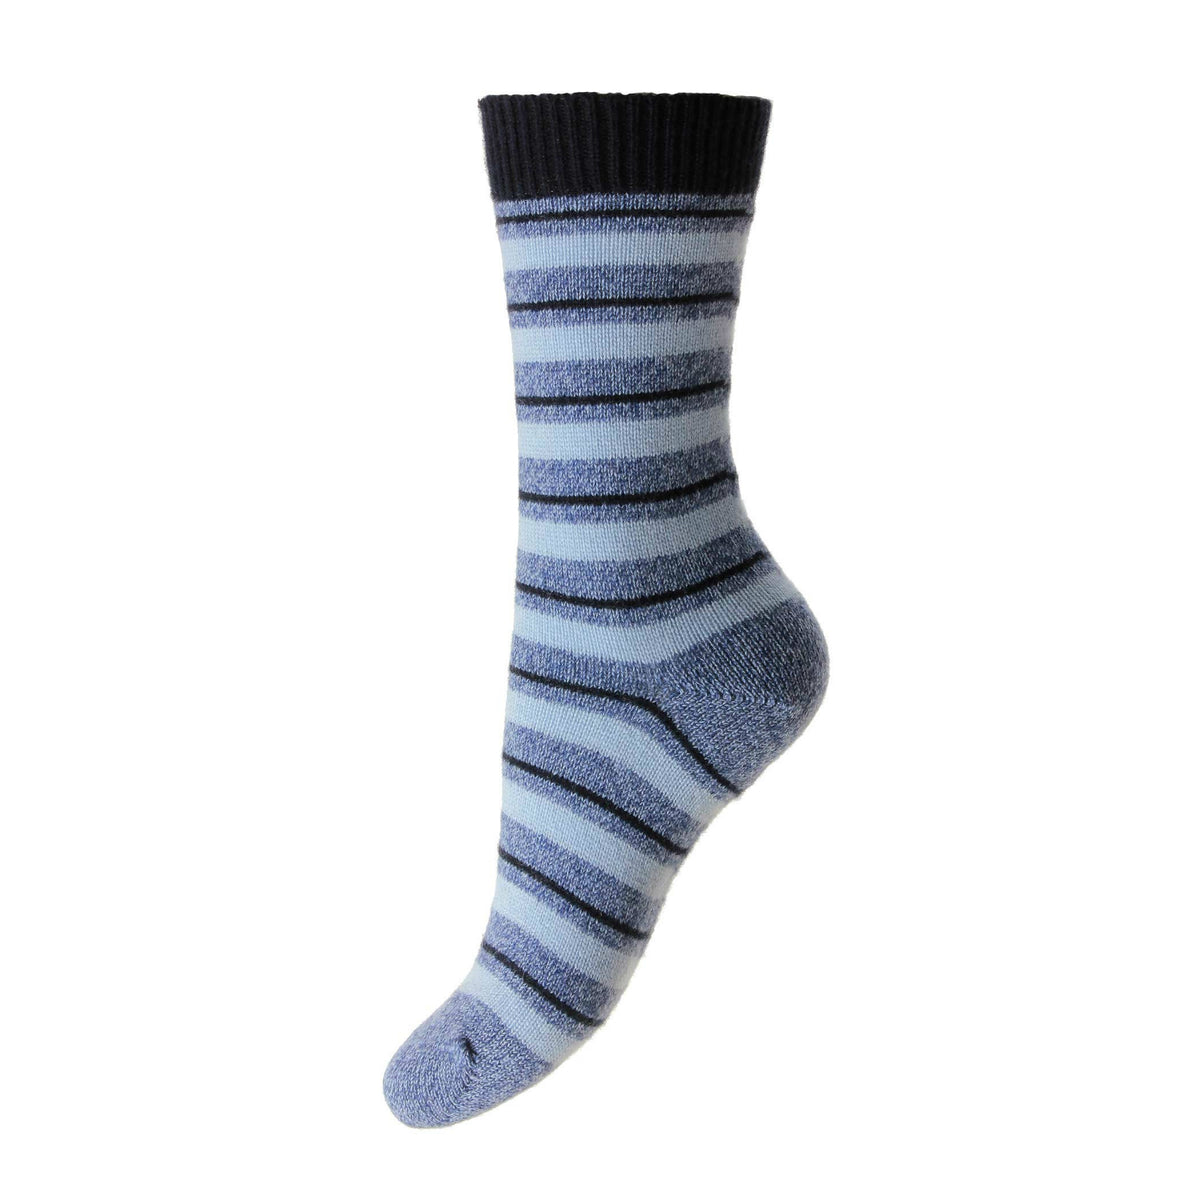 Striped Ladies Cashmere Socks | Denim Blue Ankle Sock | buy now at The Cashmere Choice London